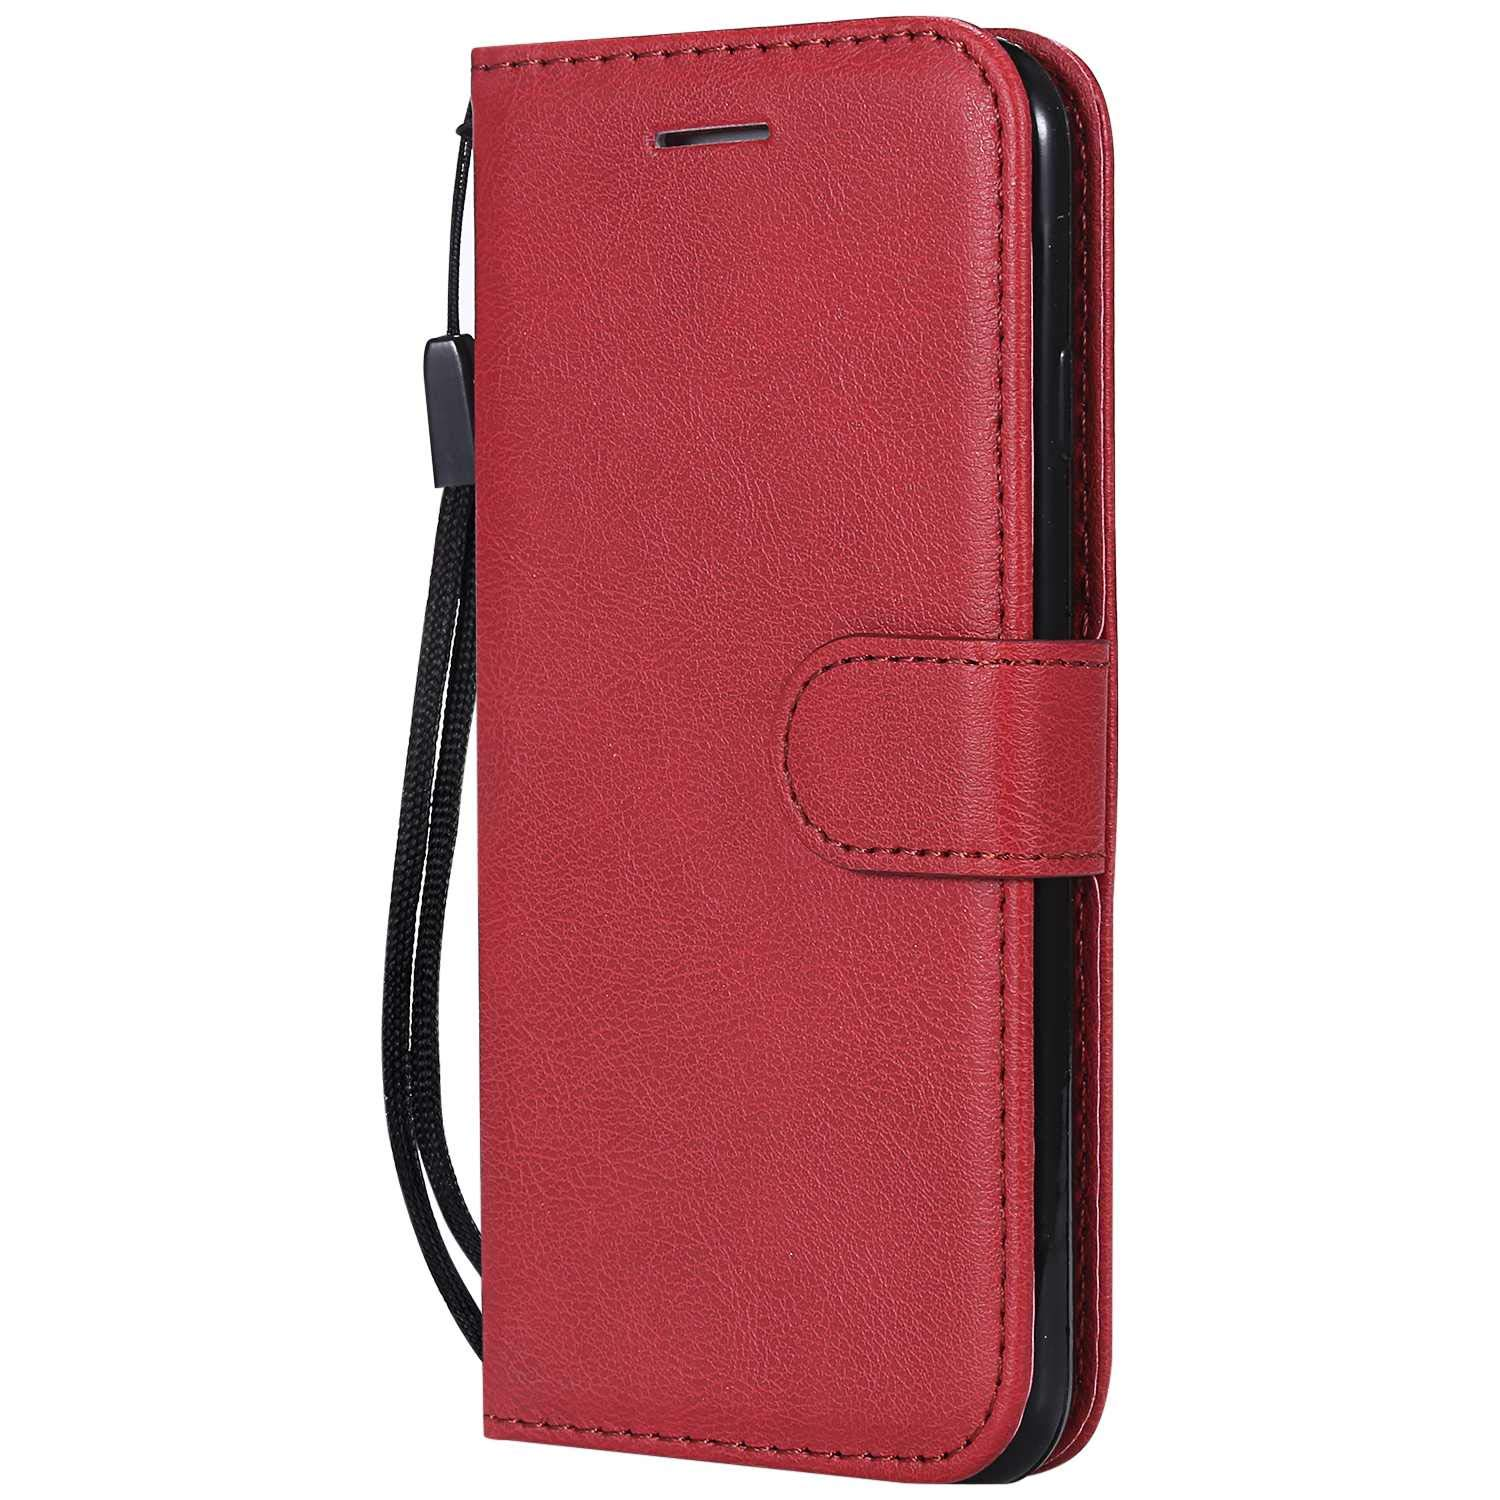 iPhone 7/8 Case, The Grafu Shockproof Leather Wallet Flip Case with [Card Slots] [Wrist Strap] Stand Function Cover for Apple iPhone 7 / iPhone 8, Red by The Grafu (Image #1)